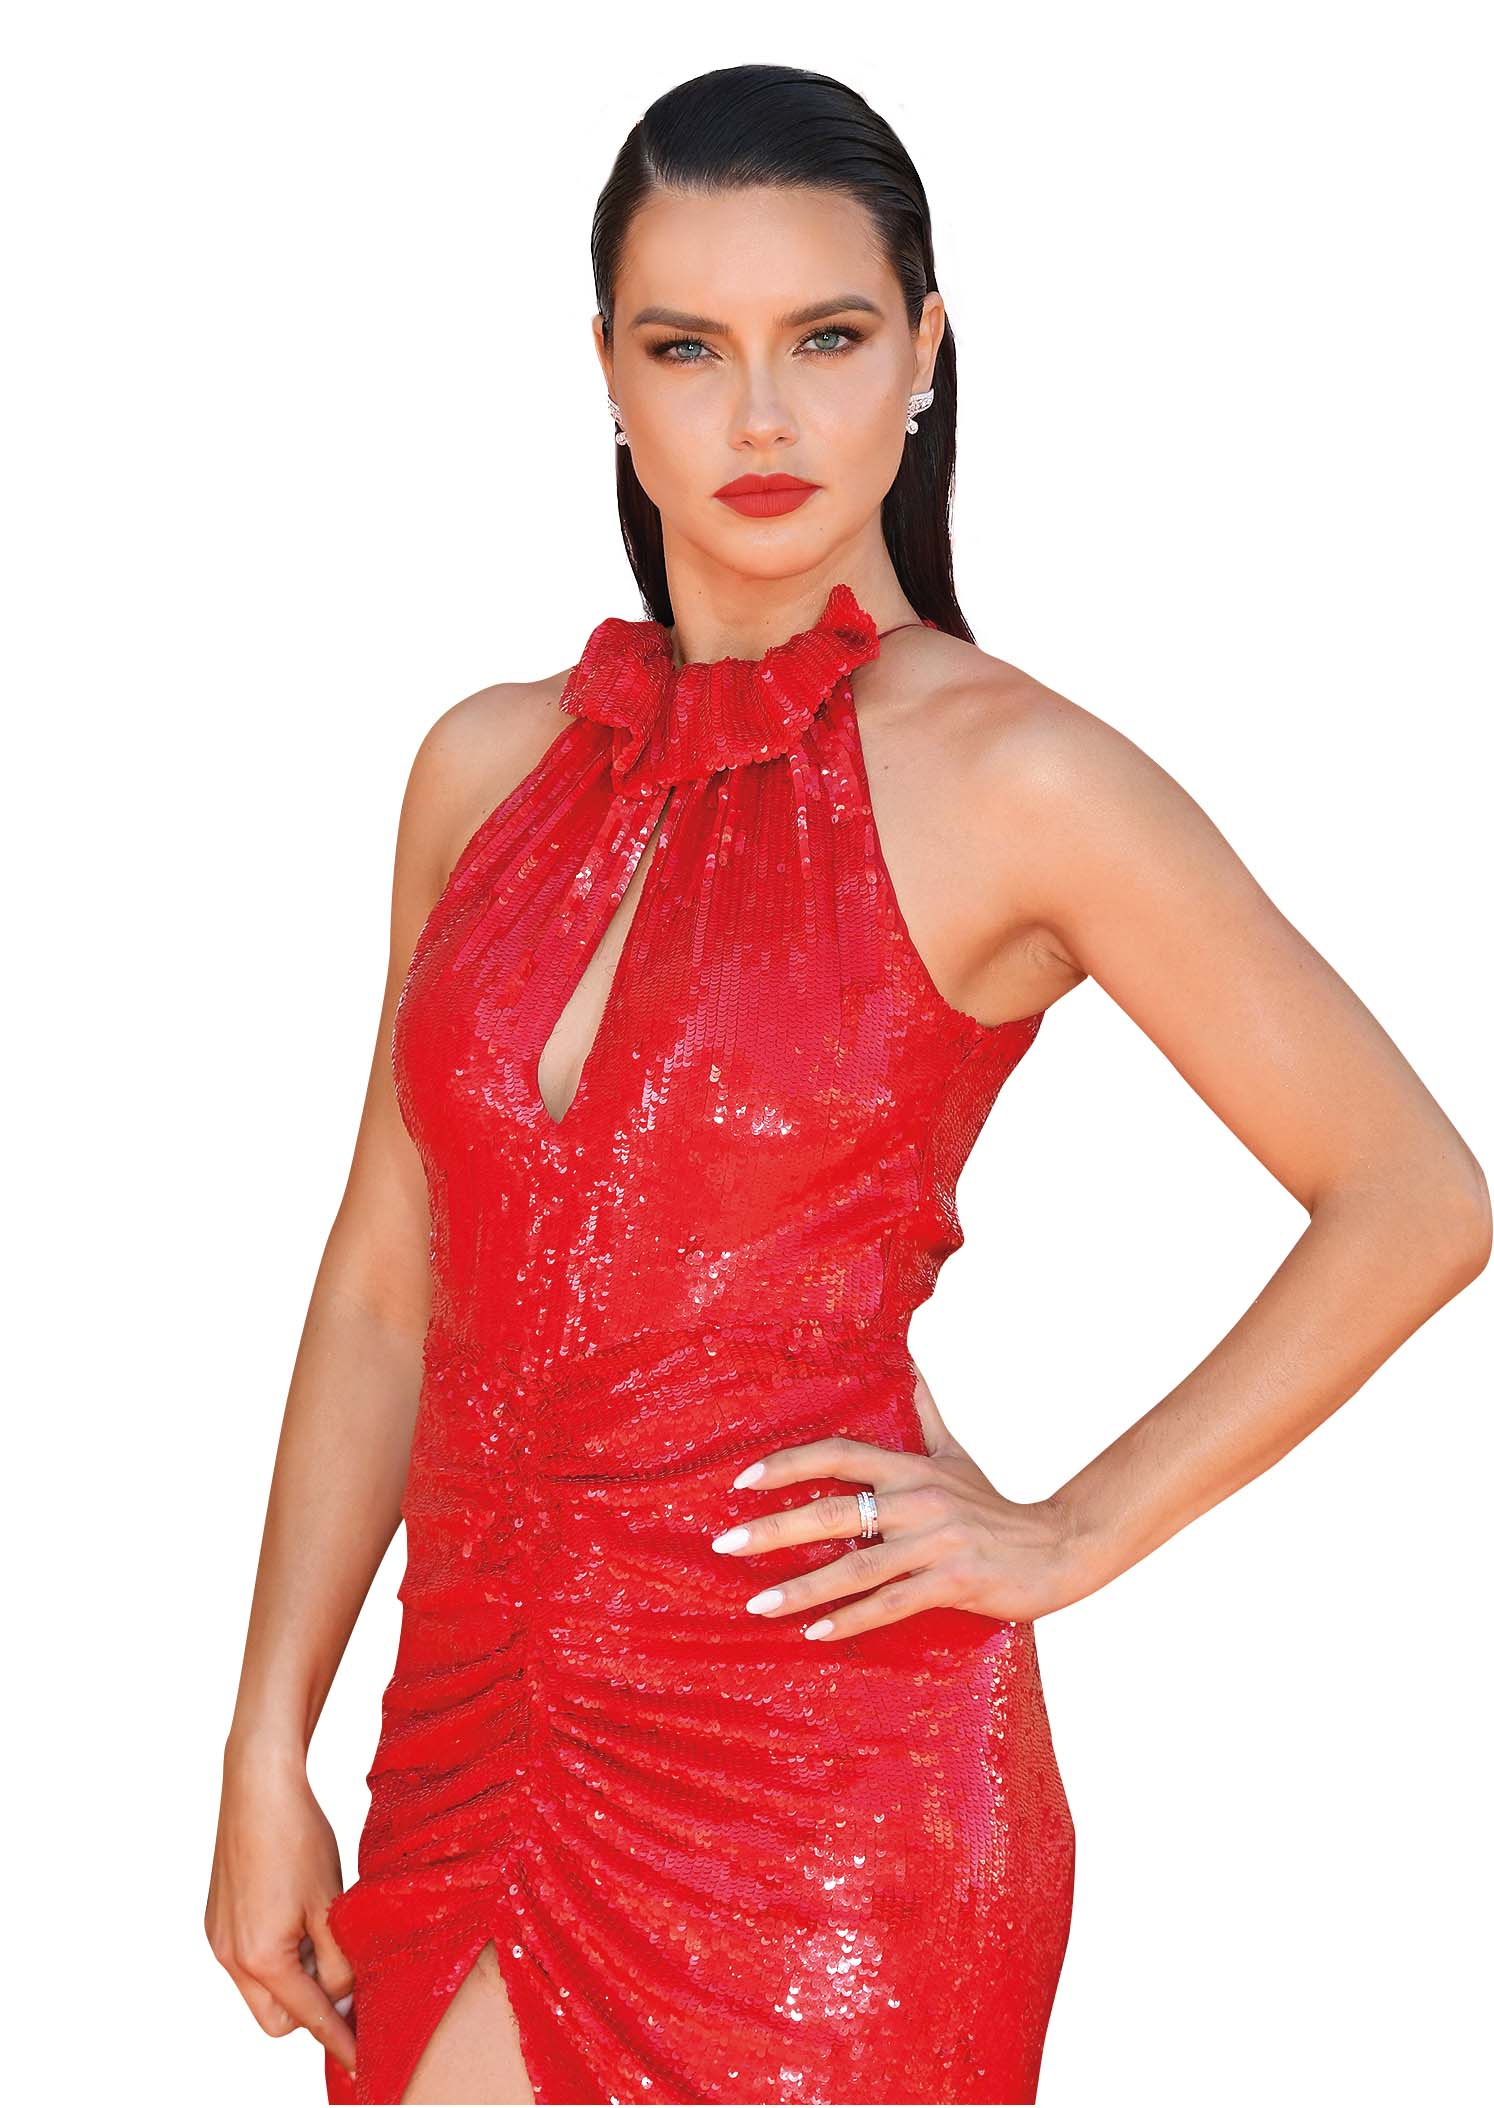 HOLLYWOOD, CALIFORNIA - JULY 22:  Adriana Lima attends Sony Pictures'